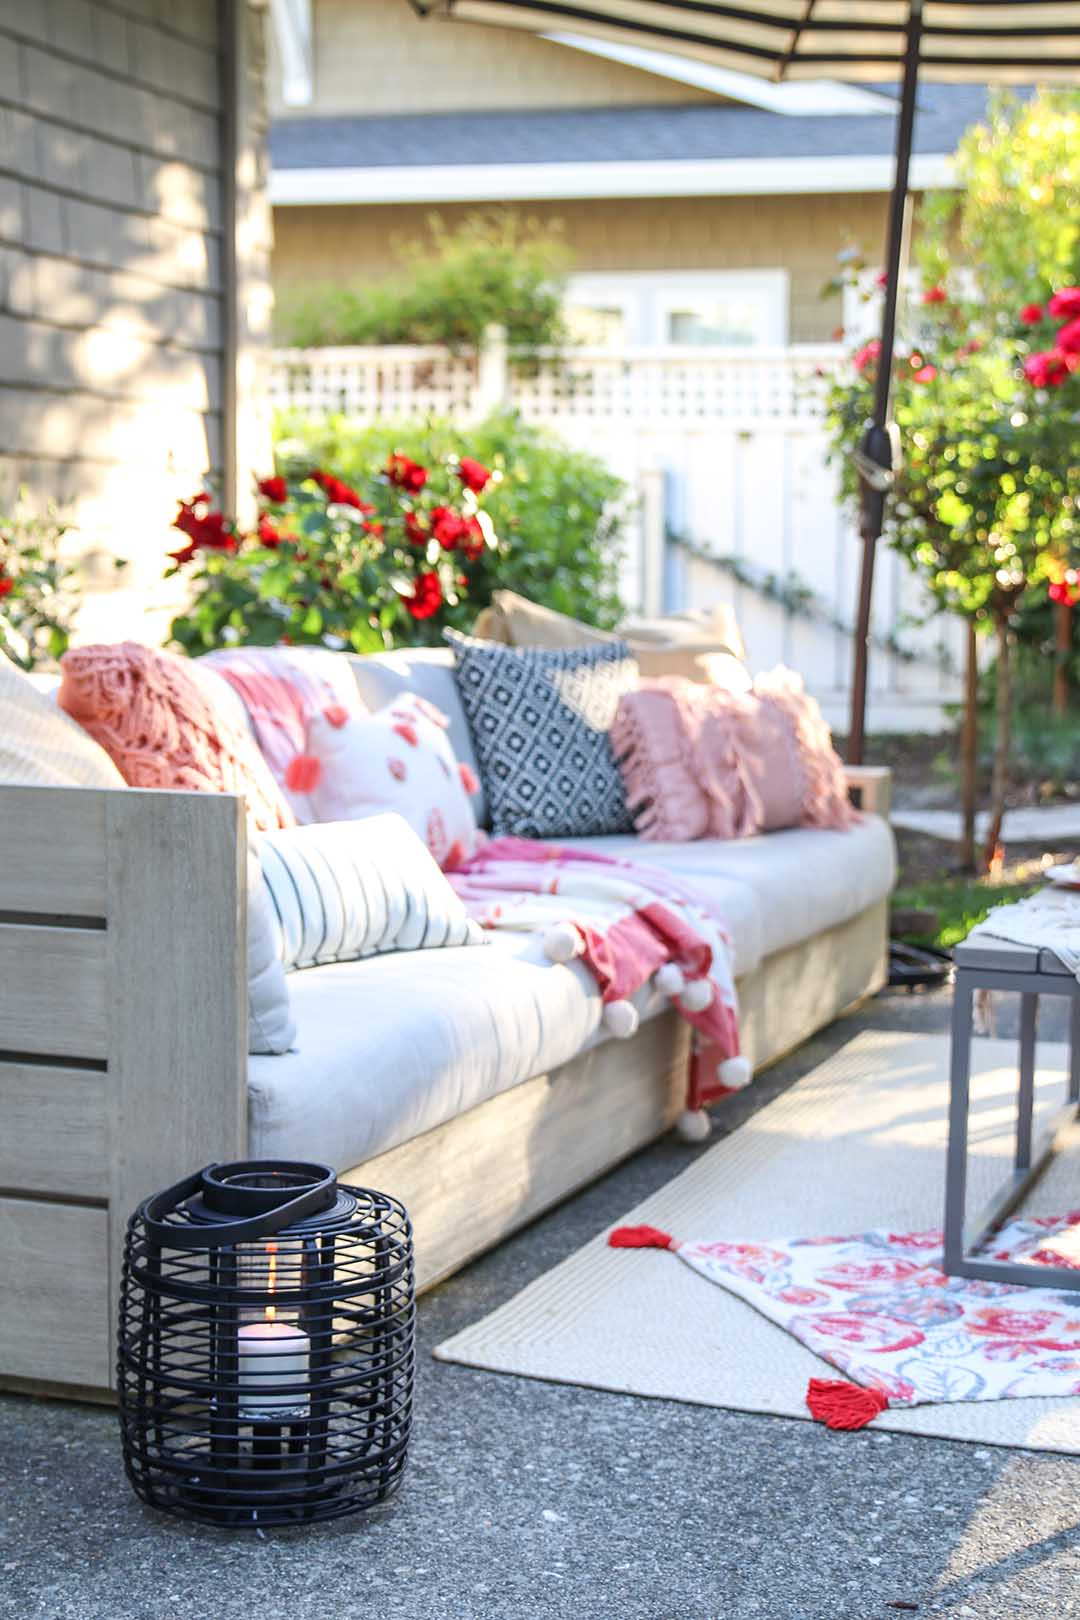 Outdoor Decorating Ideas. Patio decorating ideas. Summer entertaining. Outdoor living space